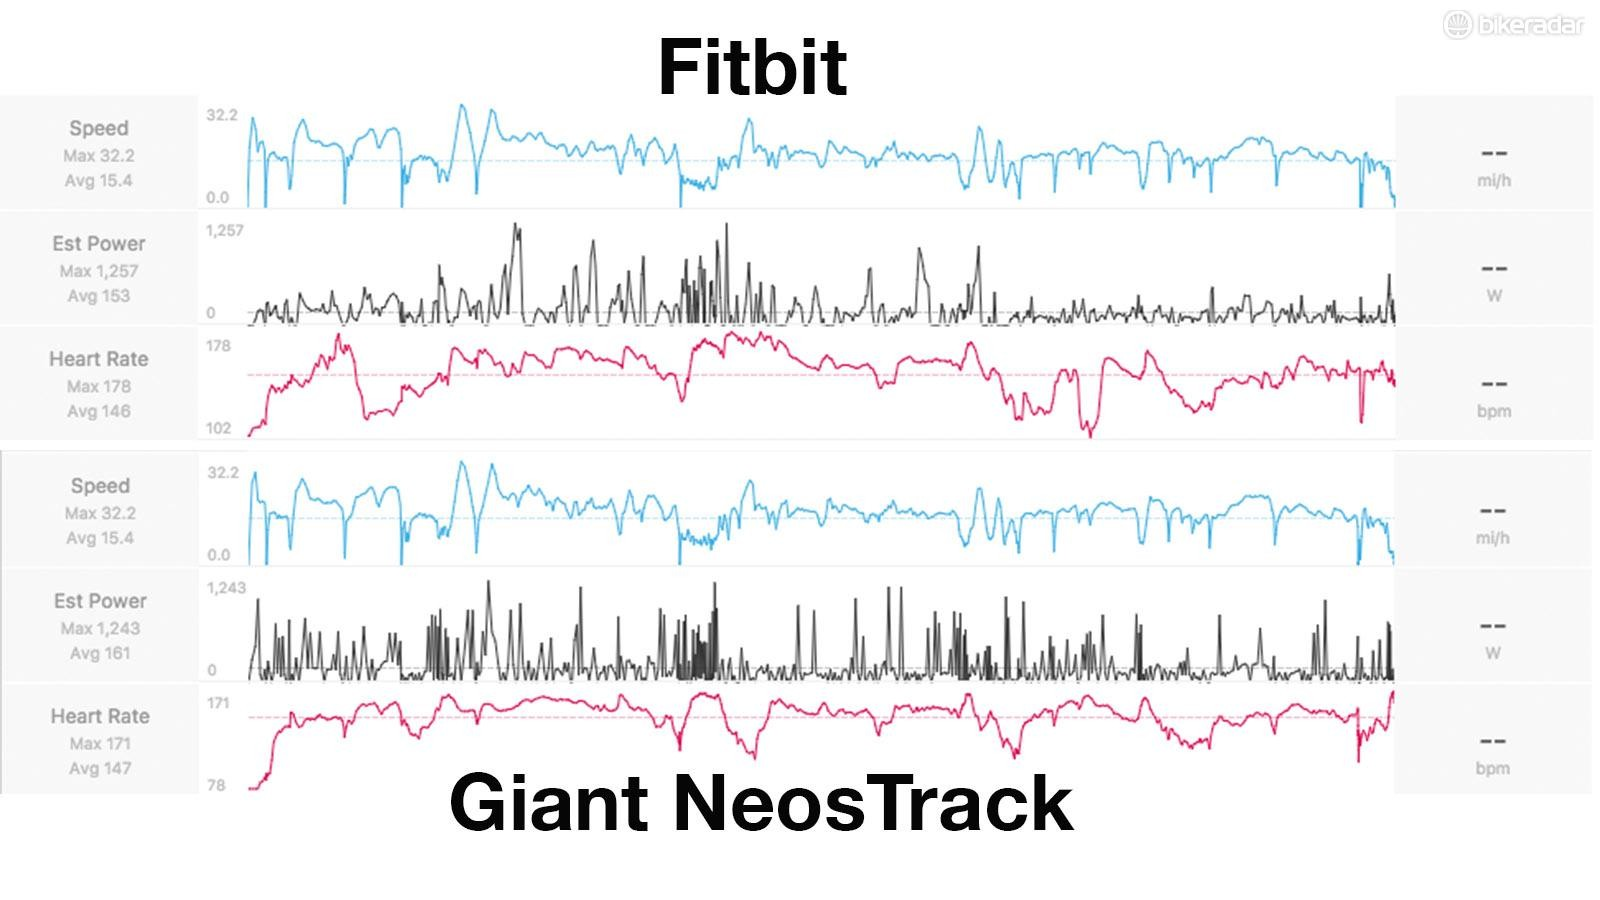 The Fitbit produced a different data set to the HR strap. More testing is required to figure out why the readings don't match